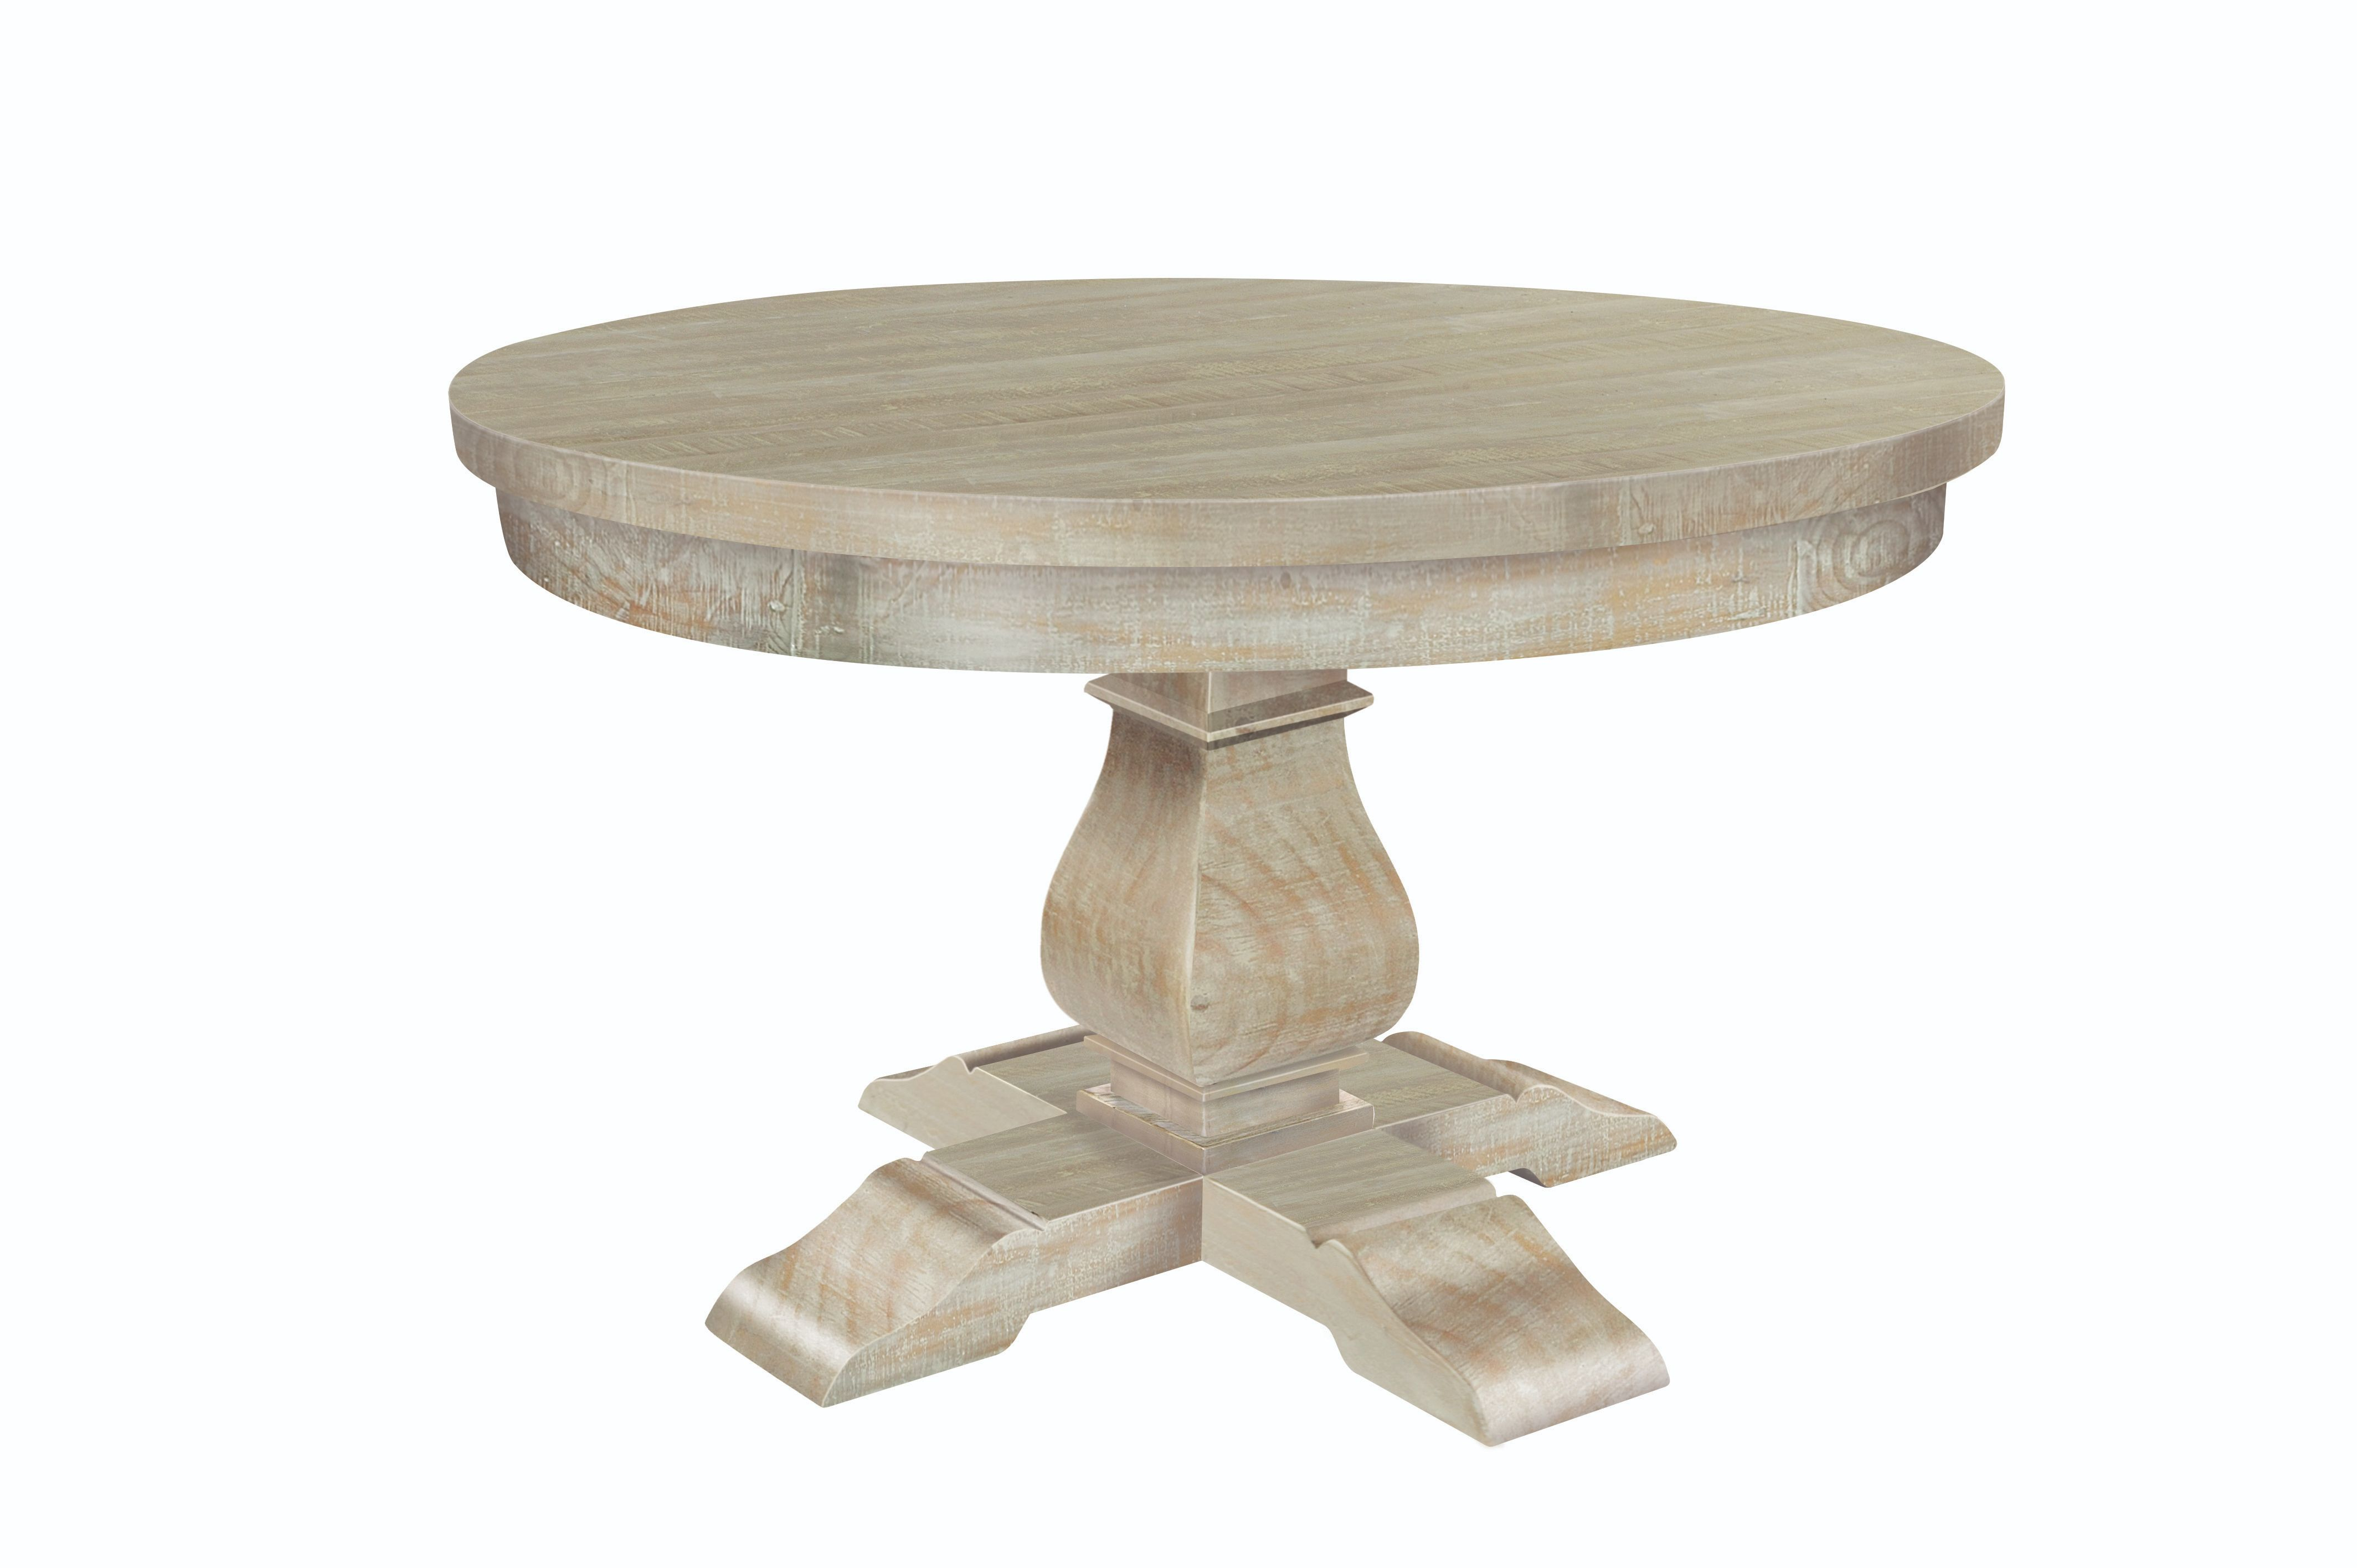 BROUGHTON ROUND DINING TABLE In Lime-washed Timber